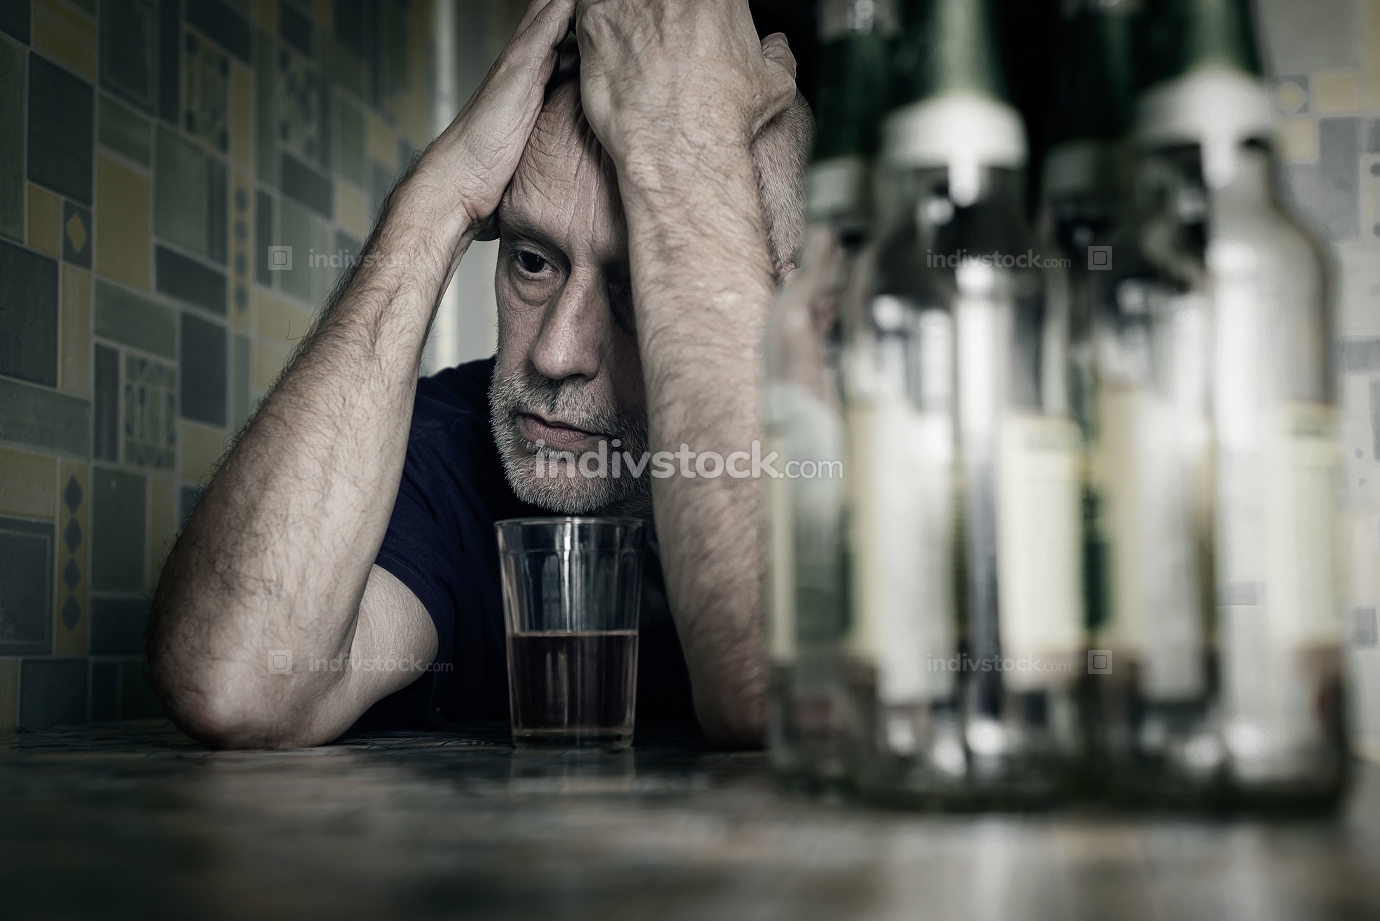 Desperate man falling into depression and becoming alcoholic